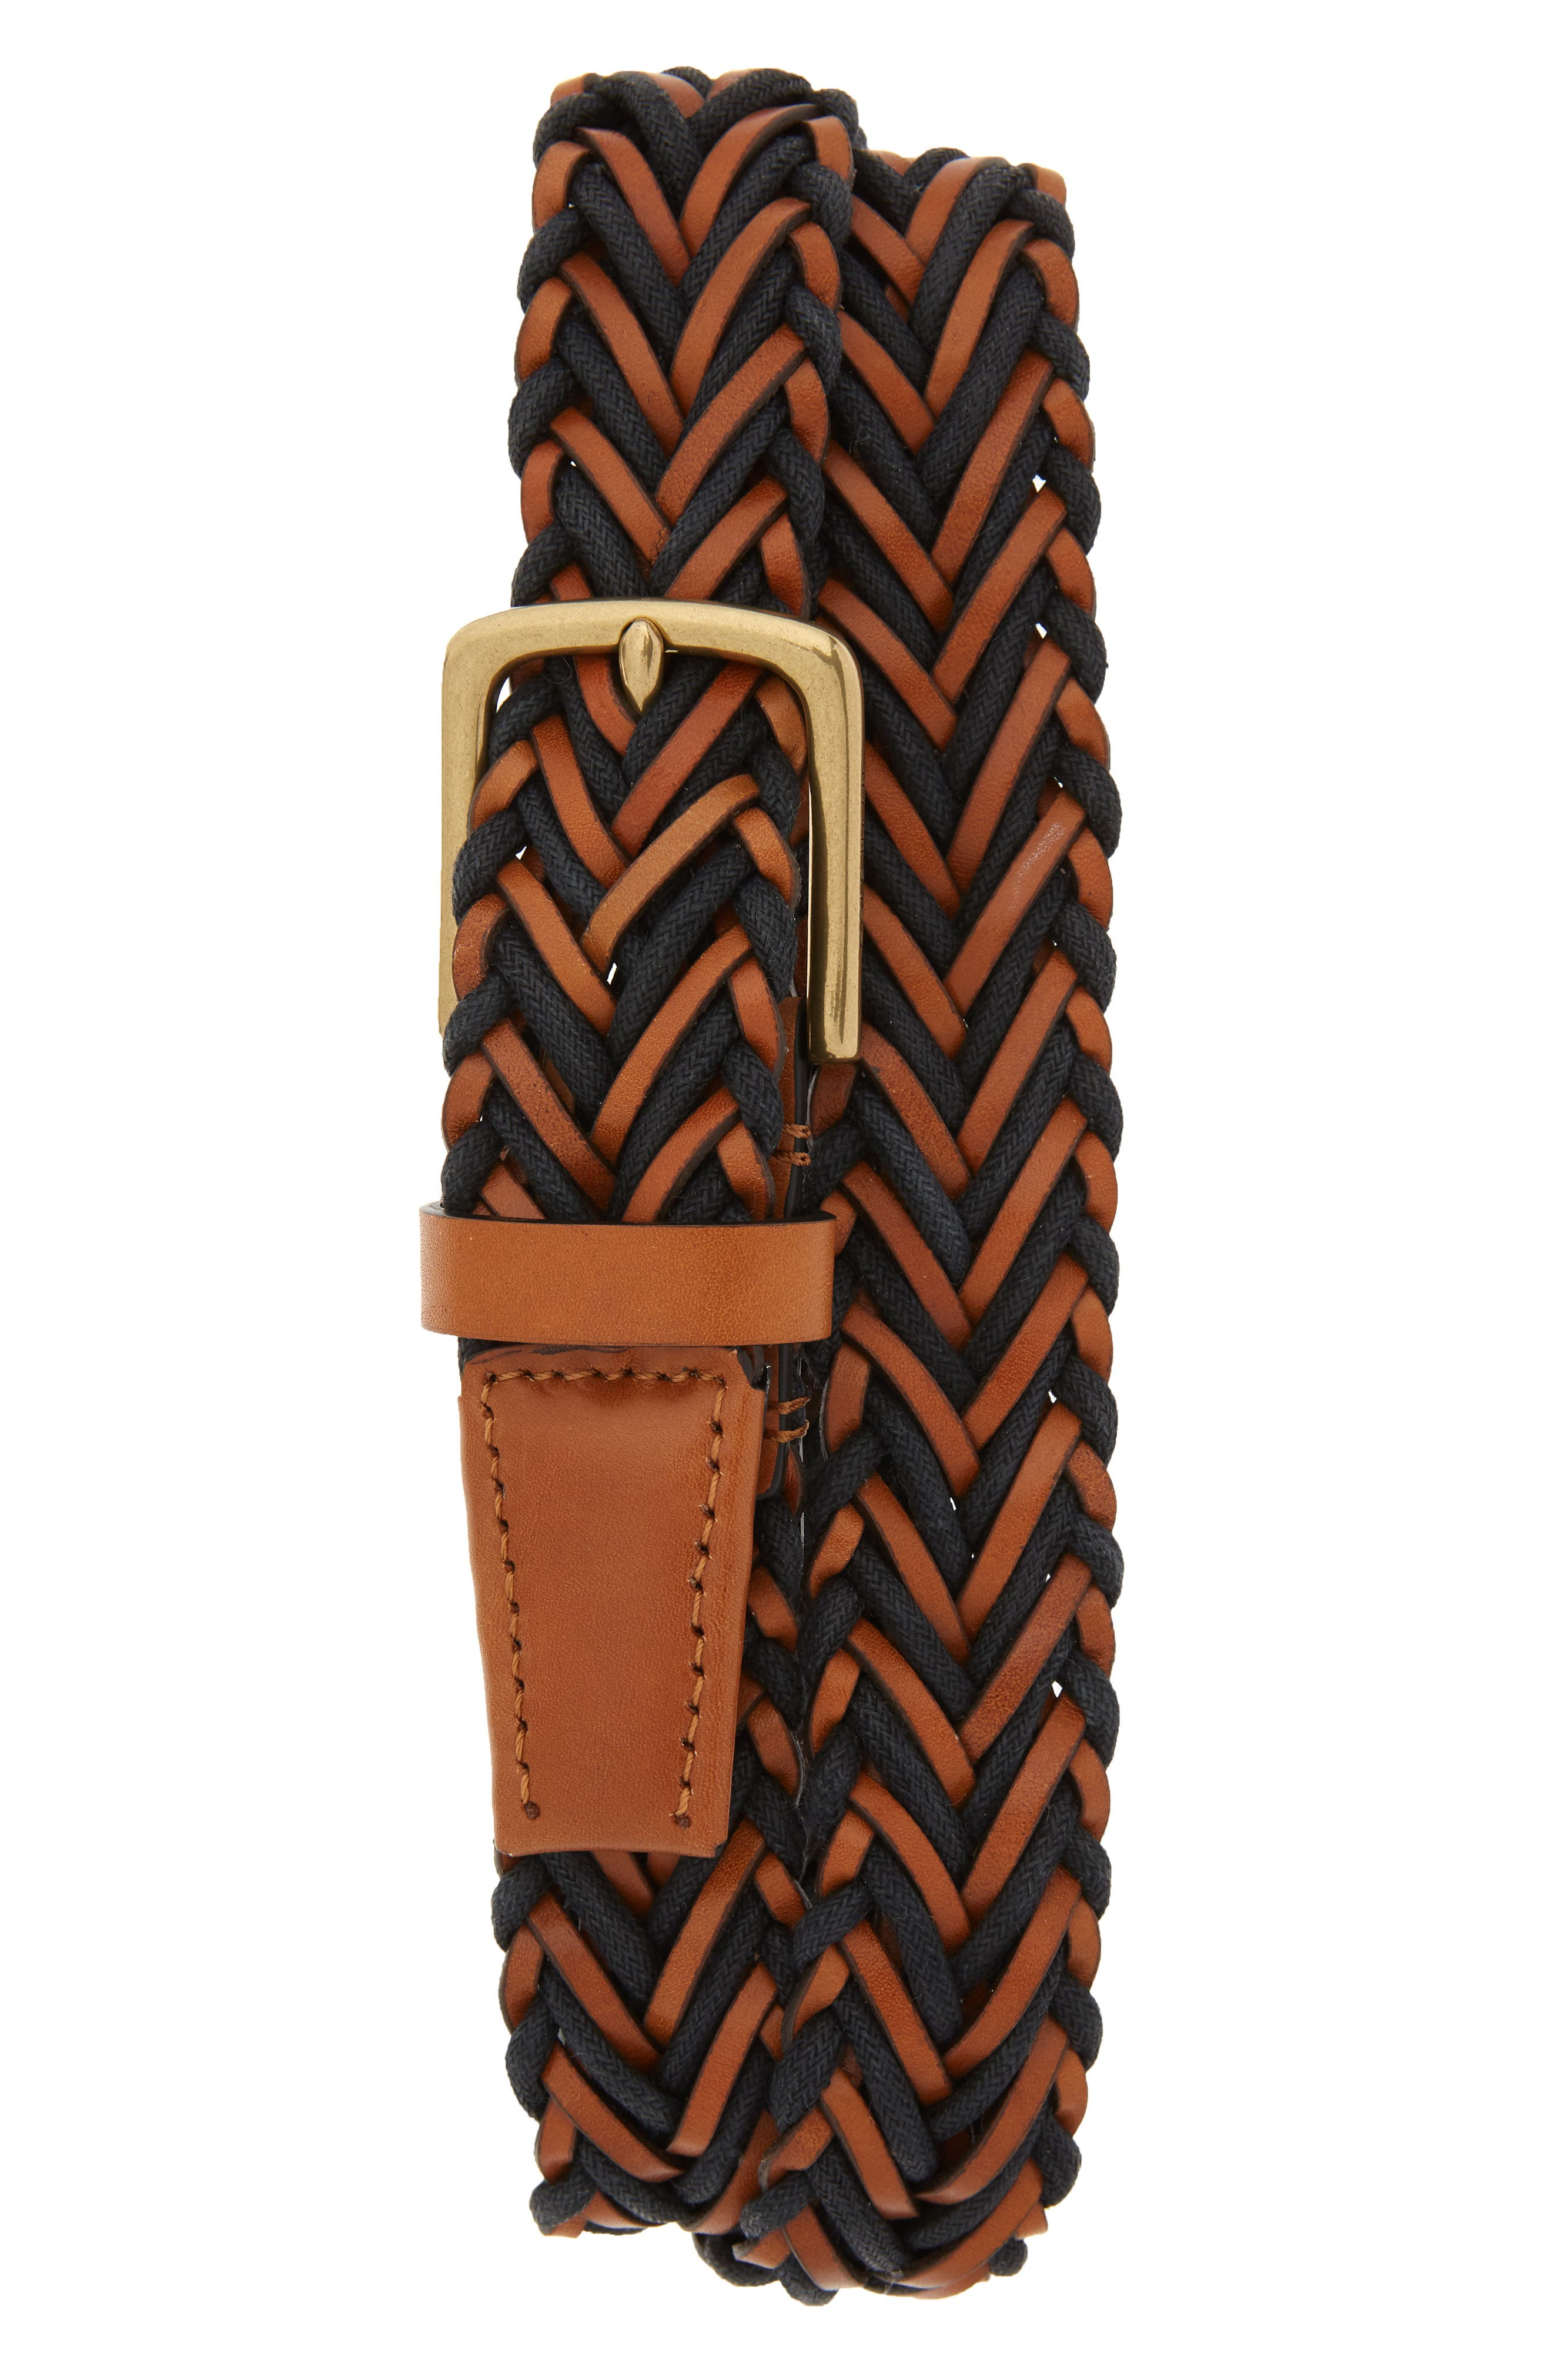 Cole Haan Braided Leather & Cord Belt, British Tan/ Old English Brass